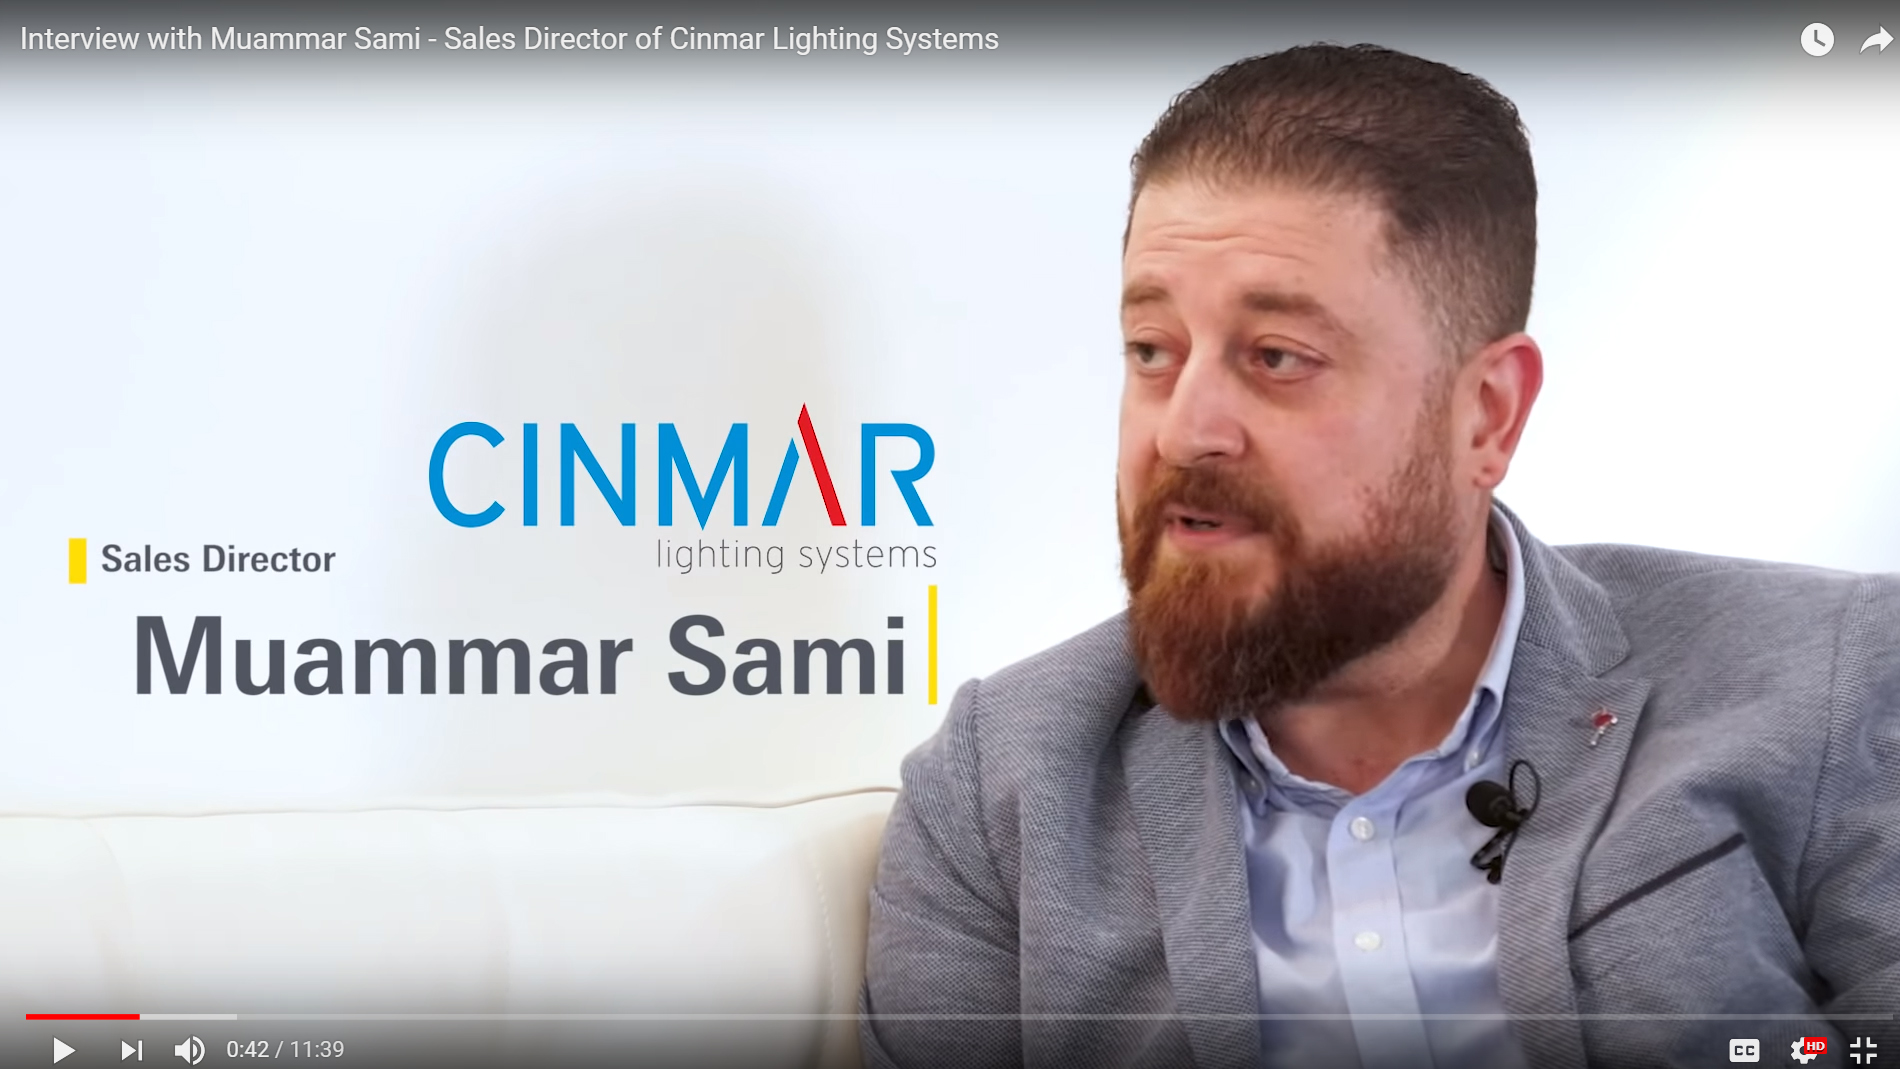 Interview with Muammar Sami, Cinmar